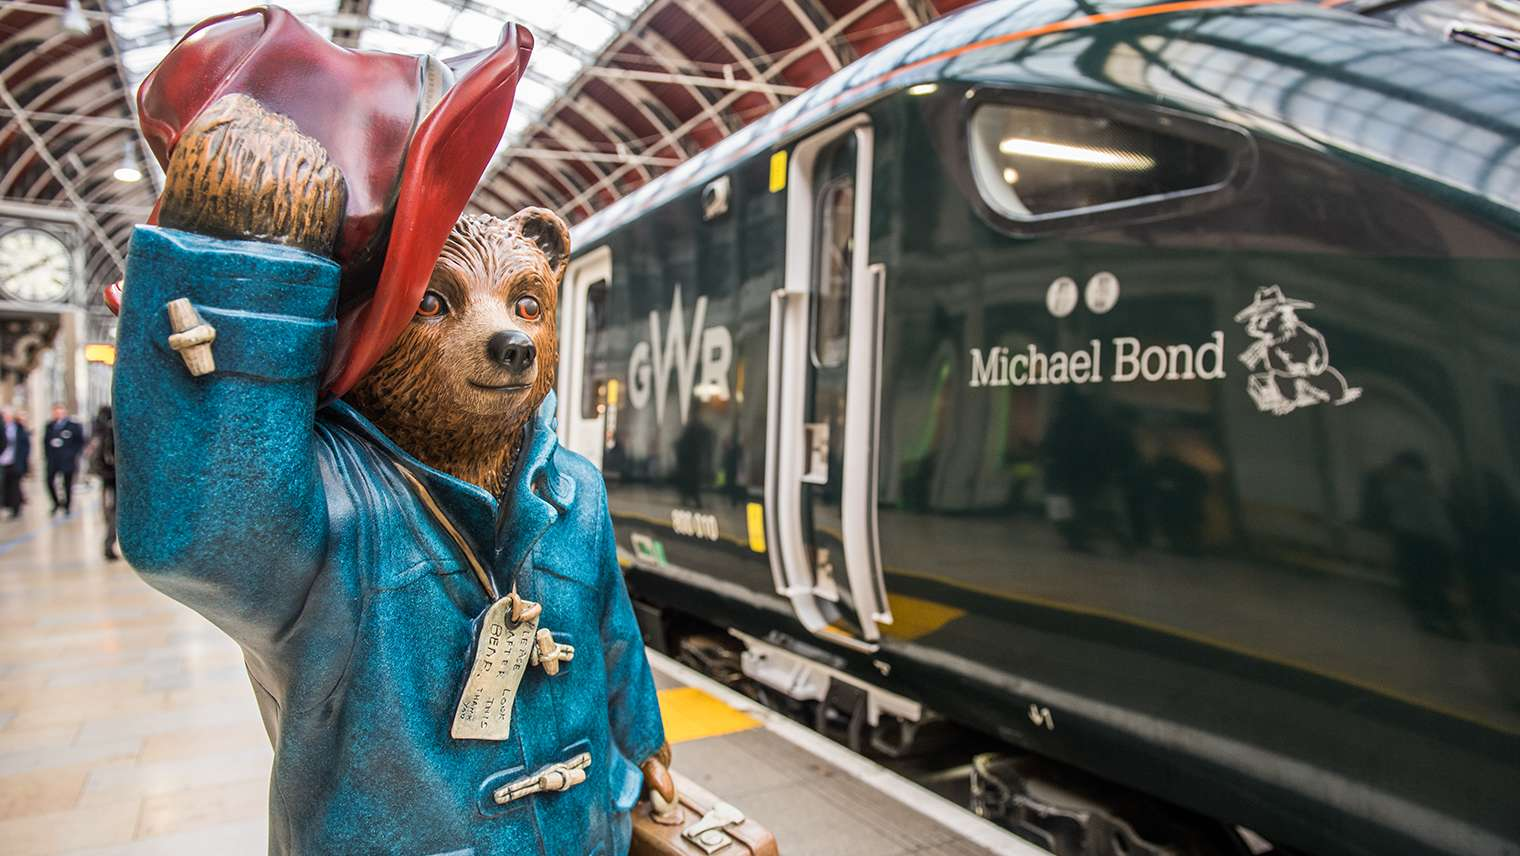 Paddington Bear statue next to a GWR Intercity Express Train named after Michael Bond